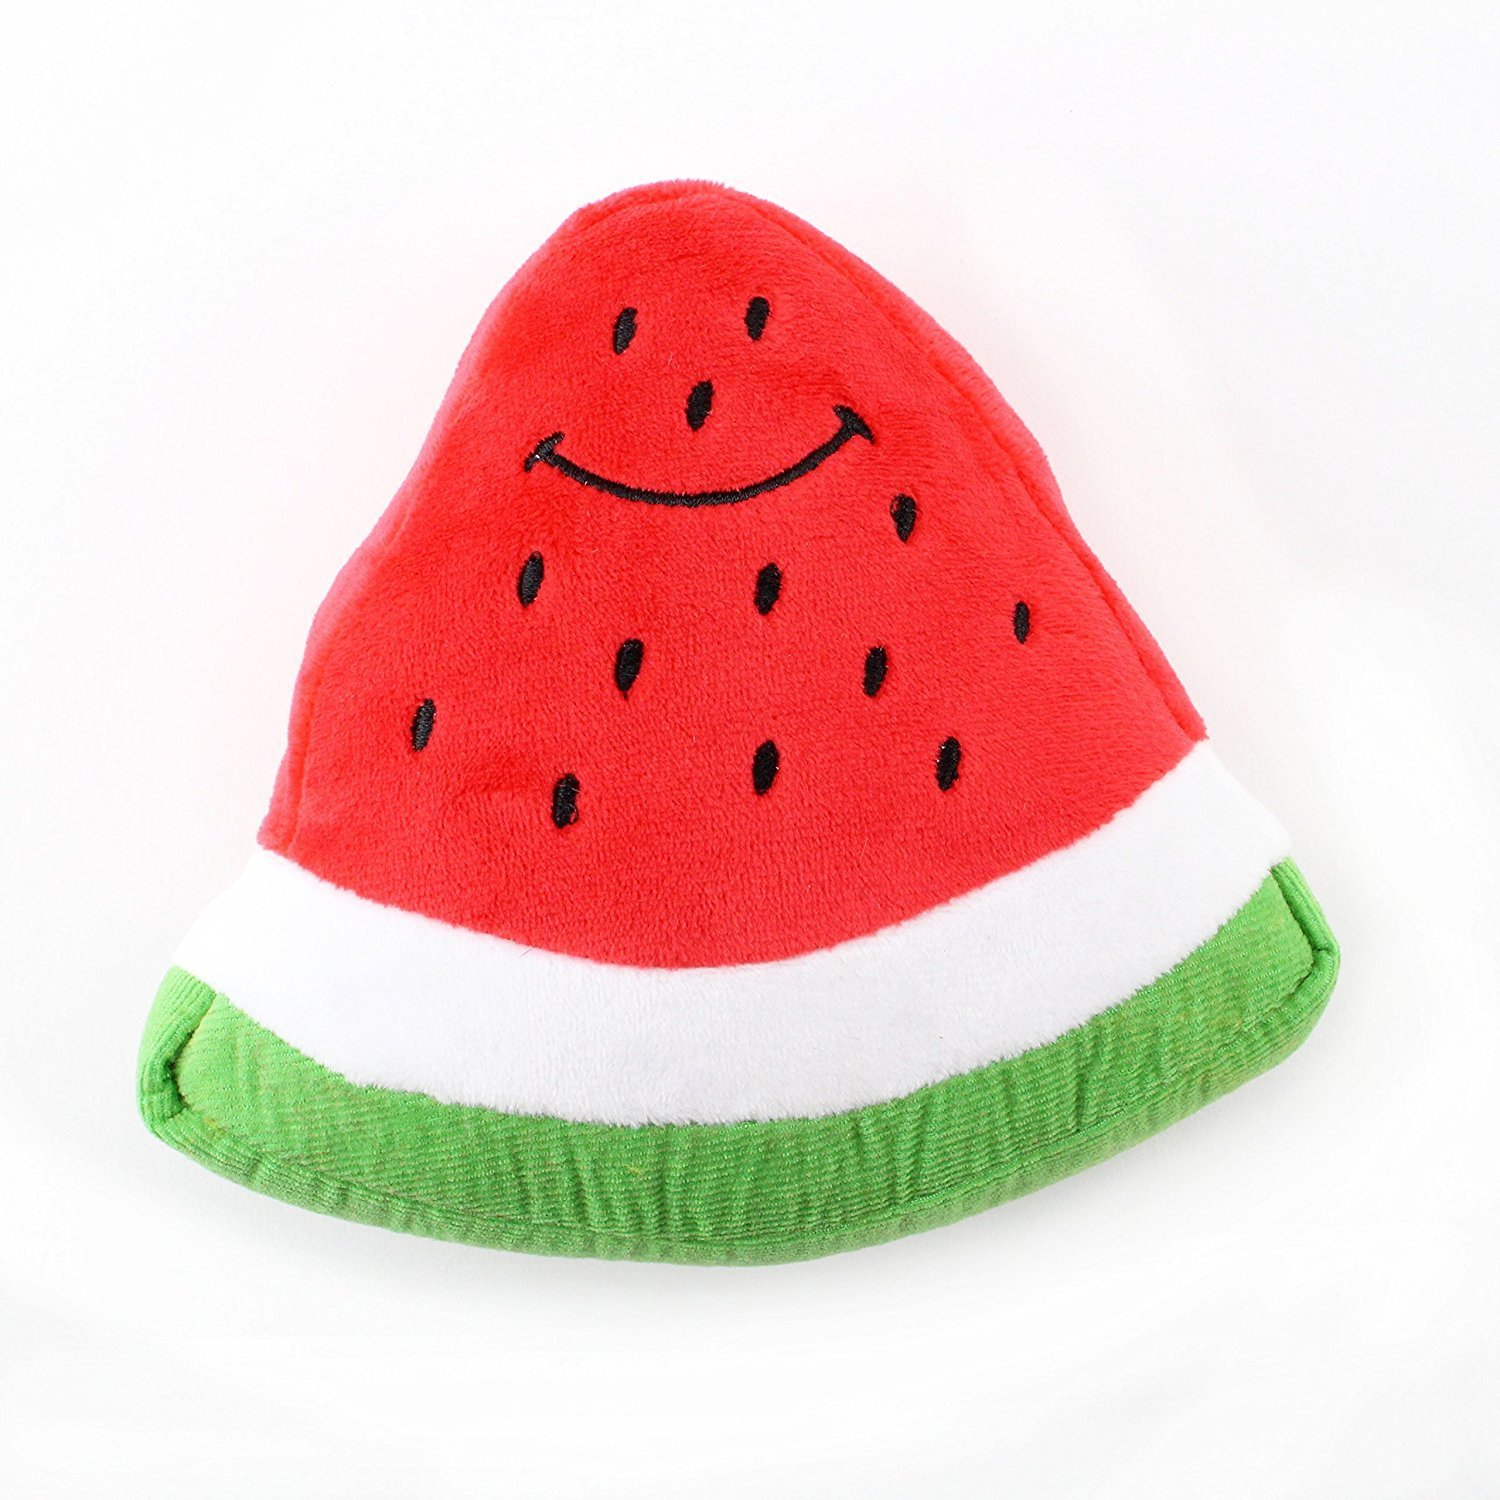 Midlee Smiley Watermelon Squeaker Plush Dog Toy by